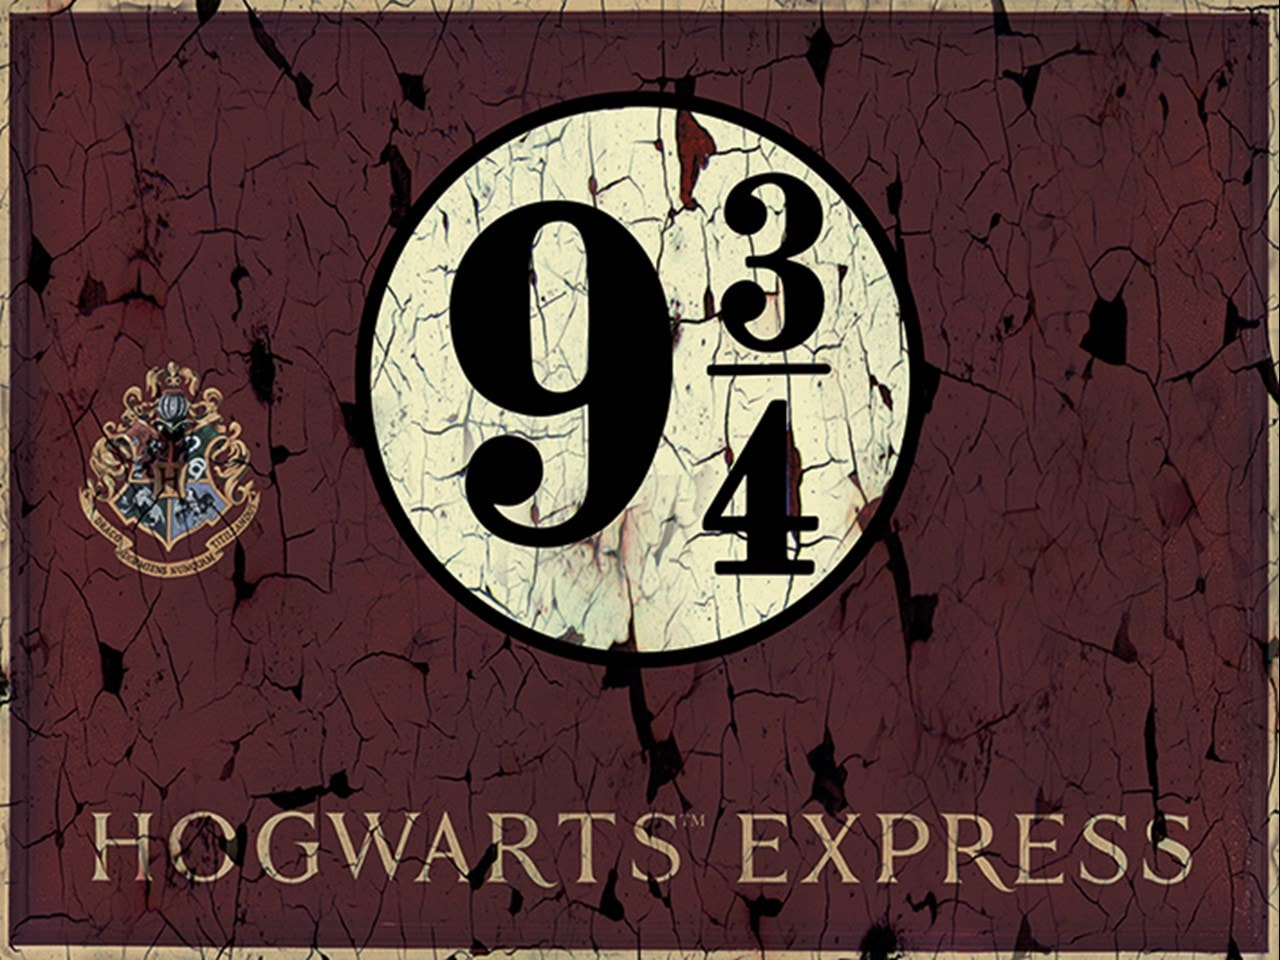 Hogwarts Express: Harry Potter Canvas Print - 1